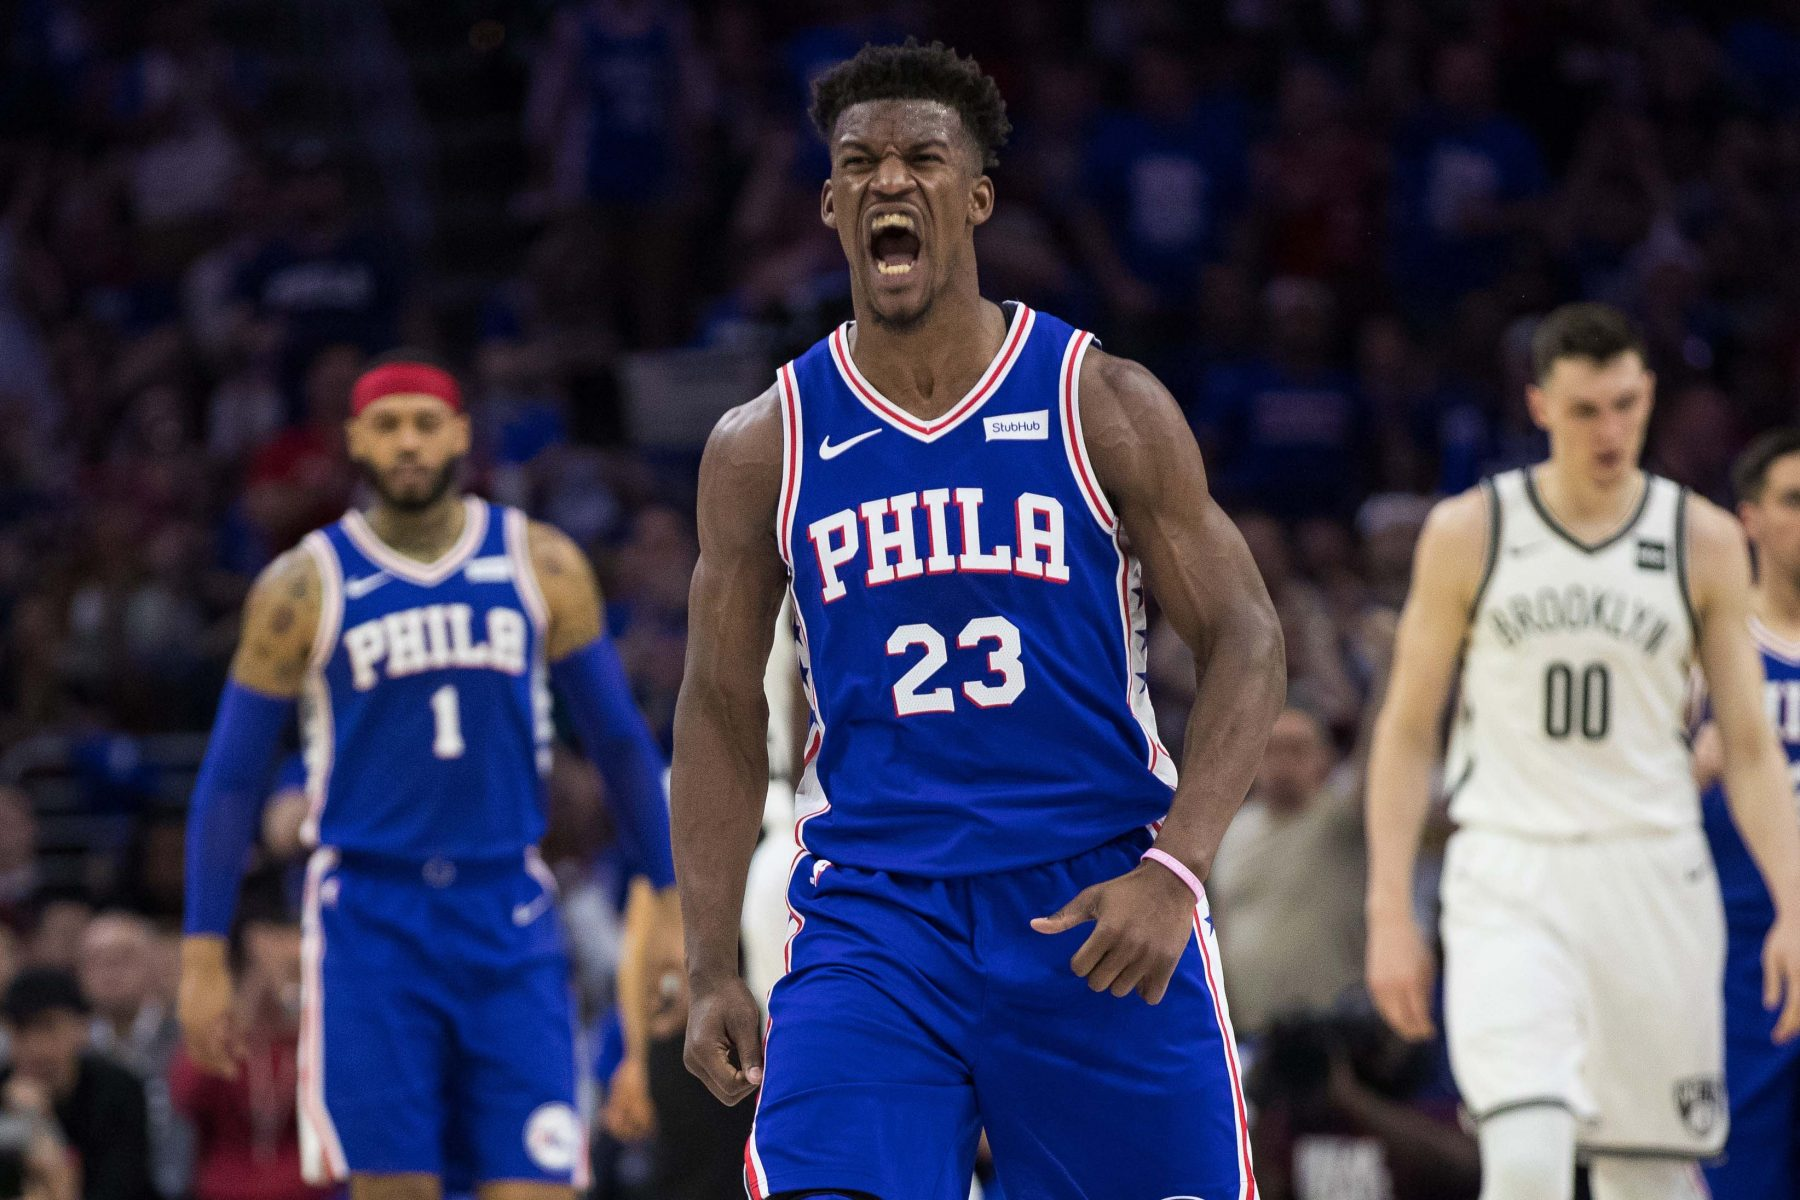 Report: Jimmy Butler turned down 5-year max from Philadelphia 76ers to sign with Miami Heat